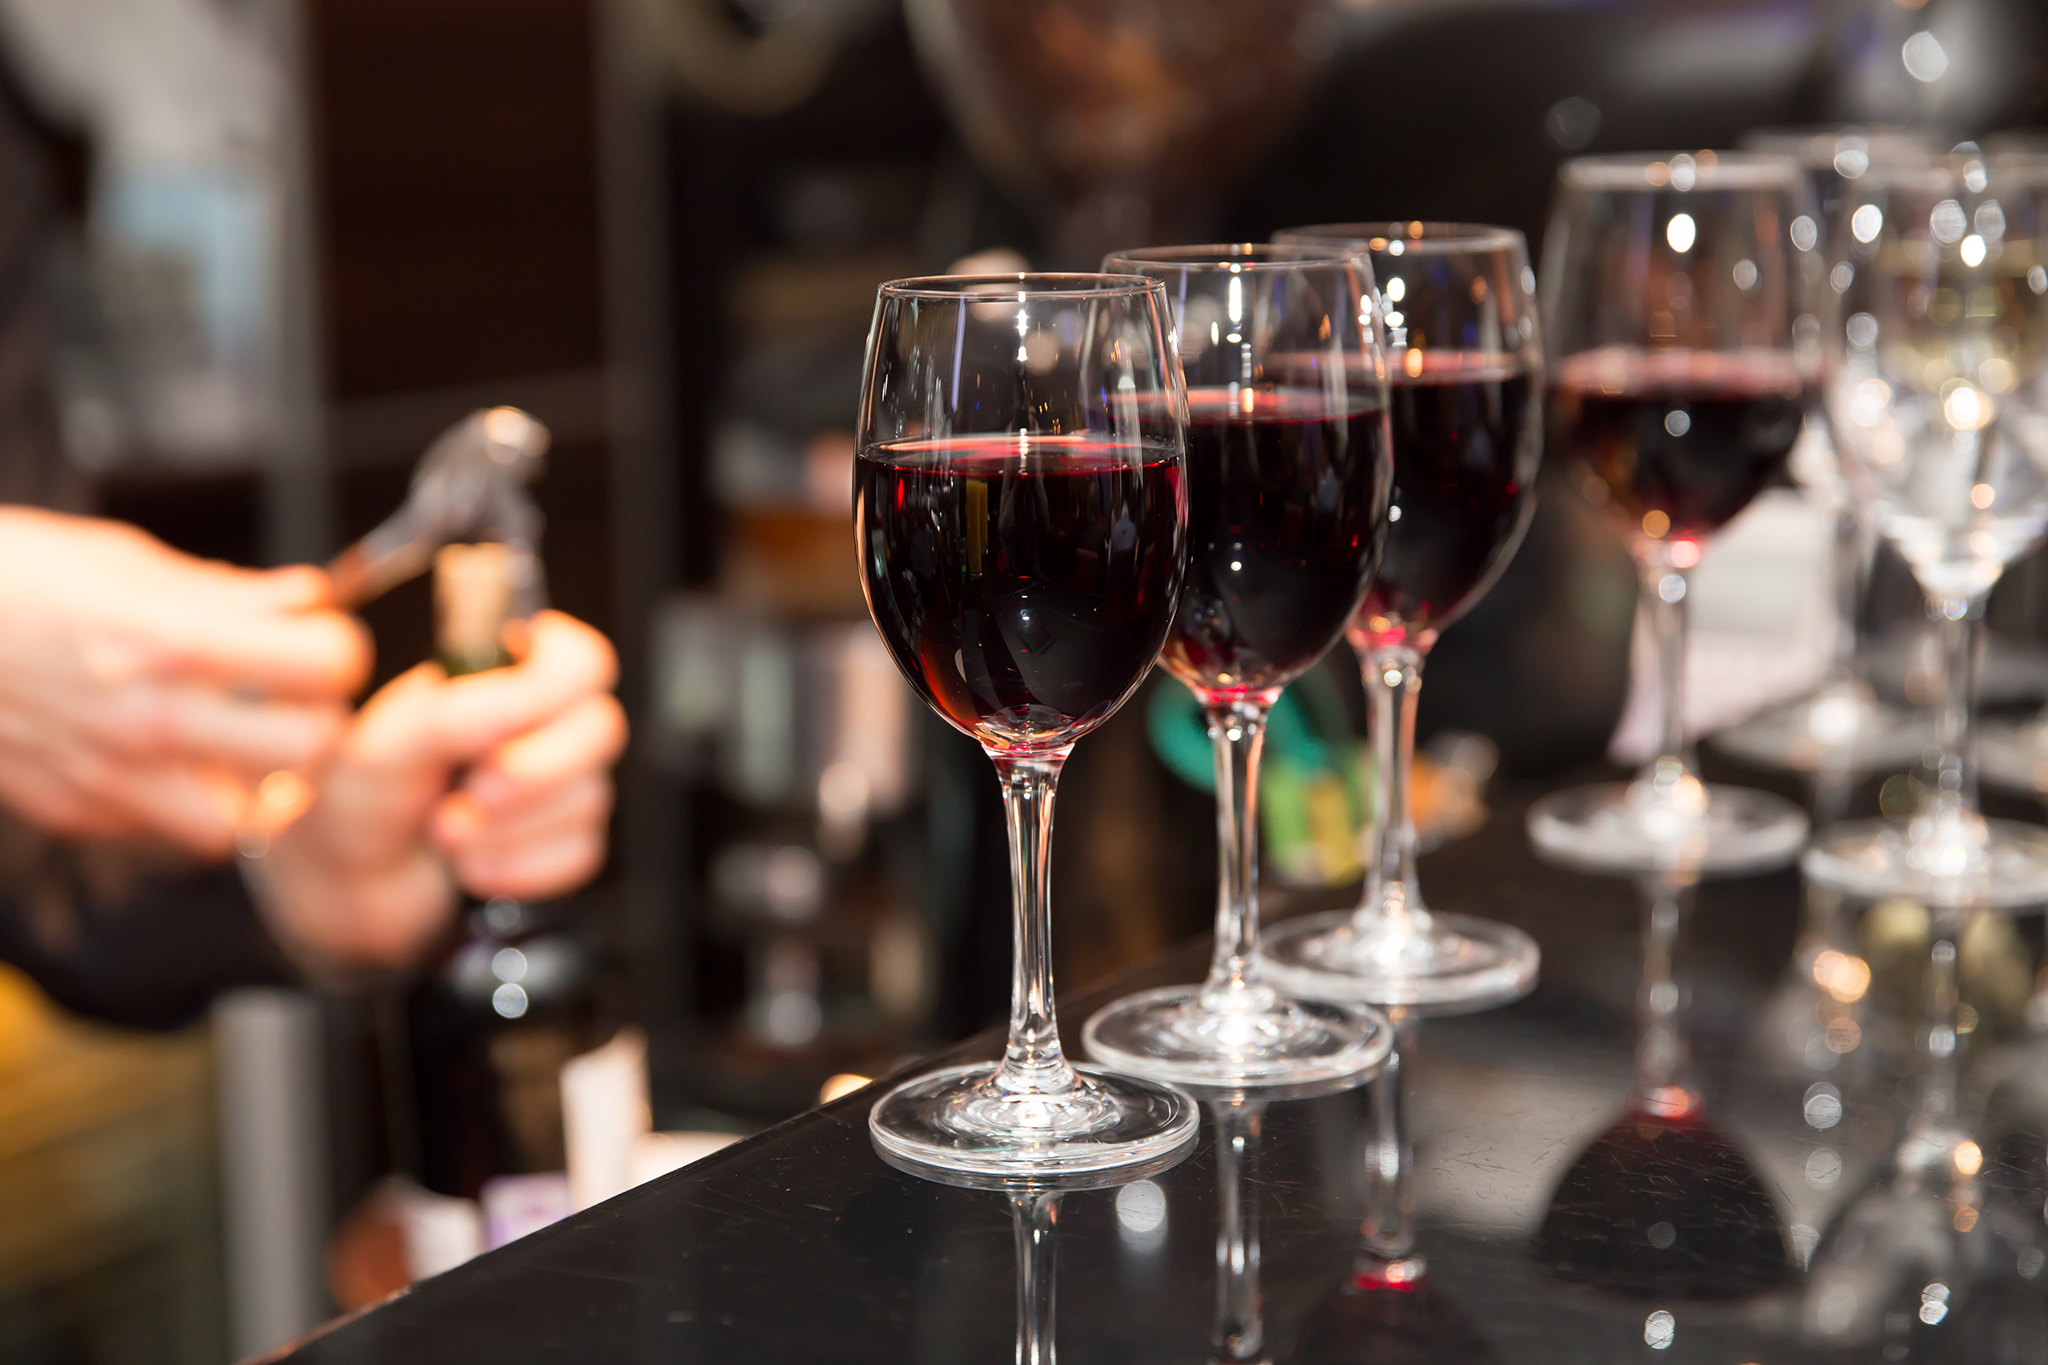 Challenge yourselves to a blind wine tasting